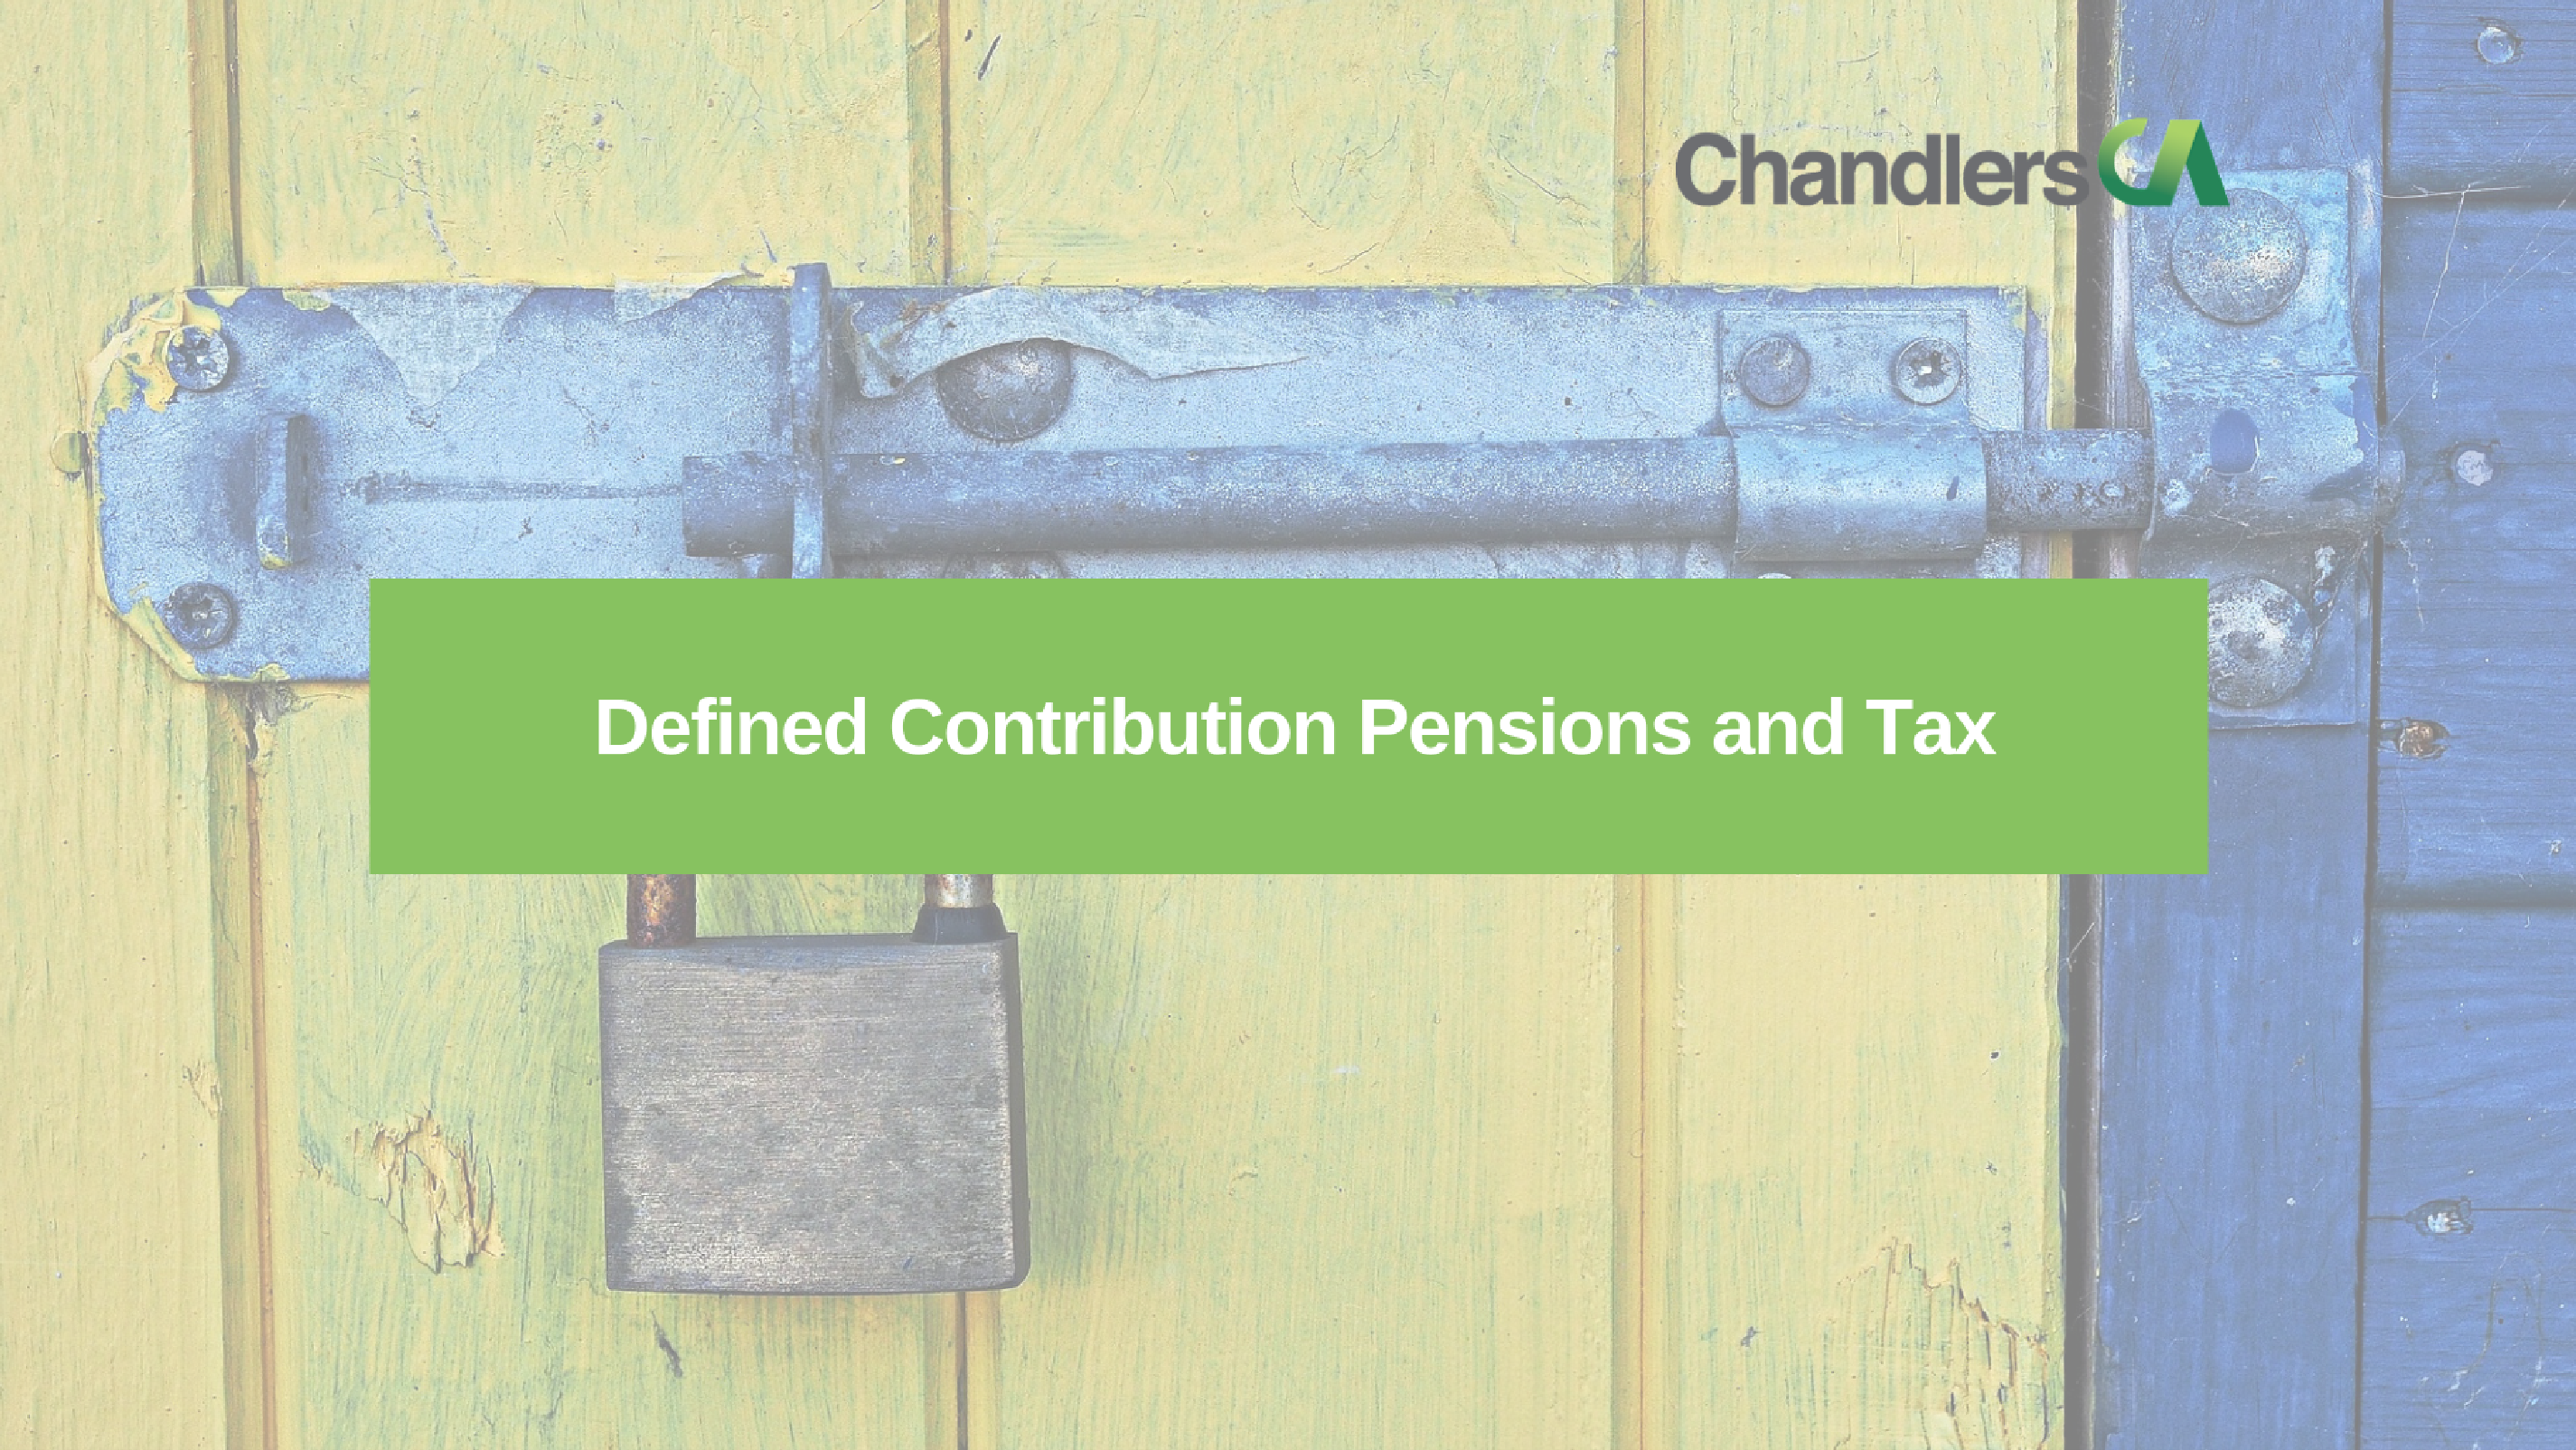 Guide to defined contribution pensions and tax